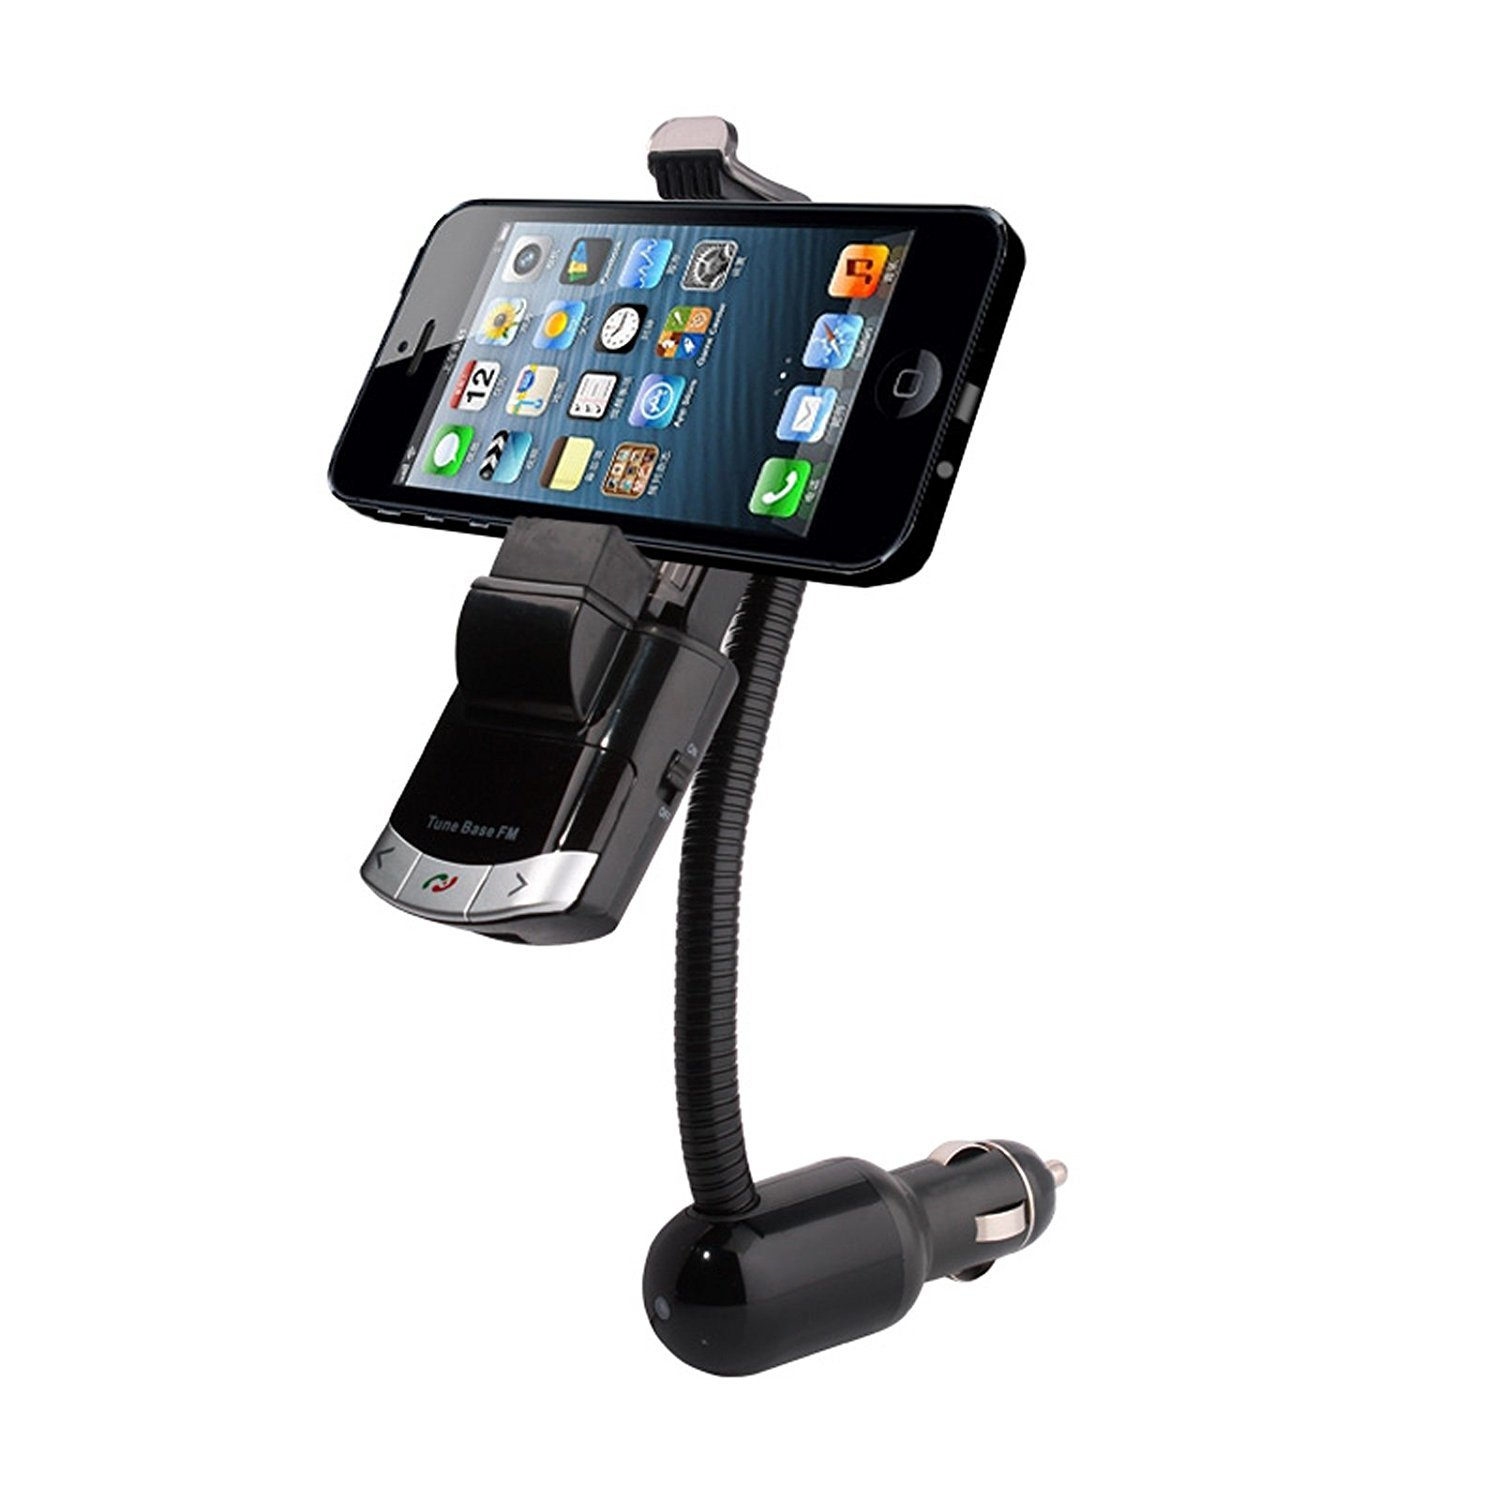 Multi-functional Cell phone Mount Holder GPS and MP3 Player Car USB Charger for iPhone Samsung Smart Phones Tablets iPad Mini etopbest 4351480576 Wireless Bluetooth FM Transmitter Car Kit Hands free Calling